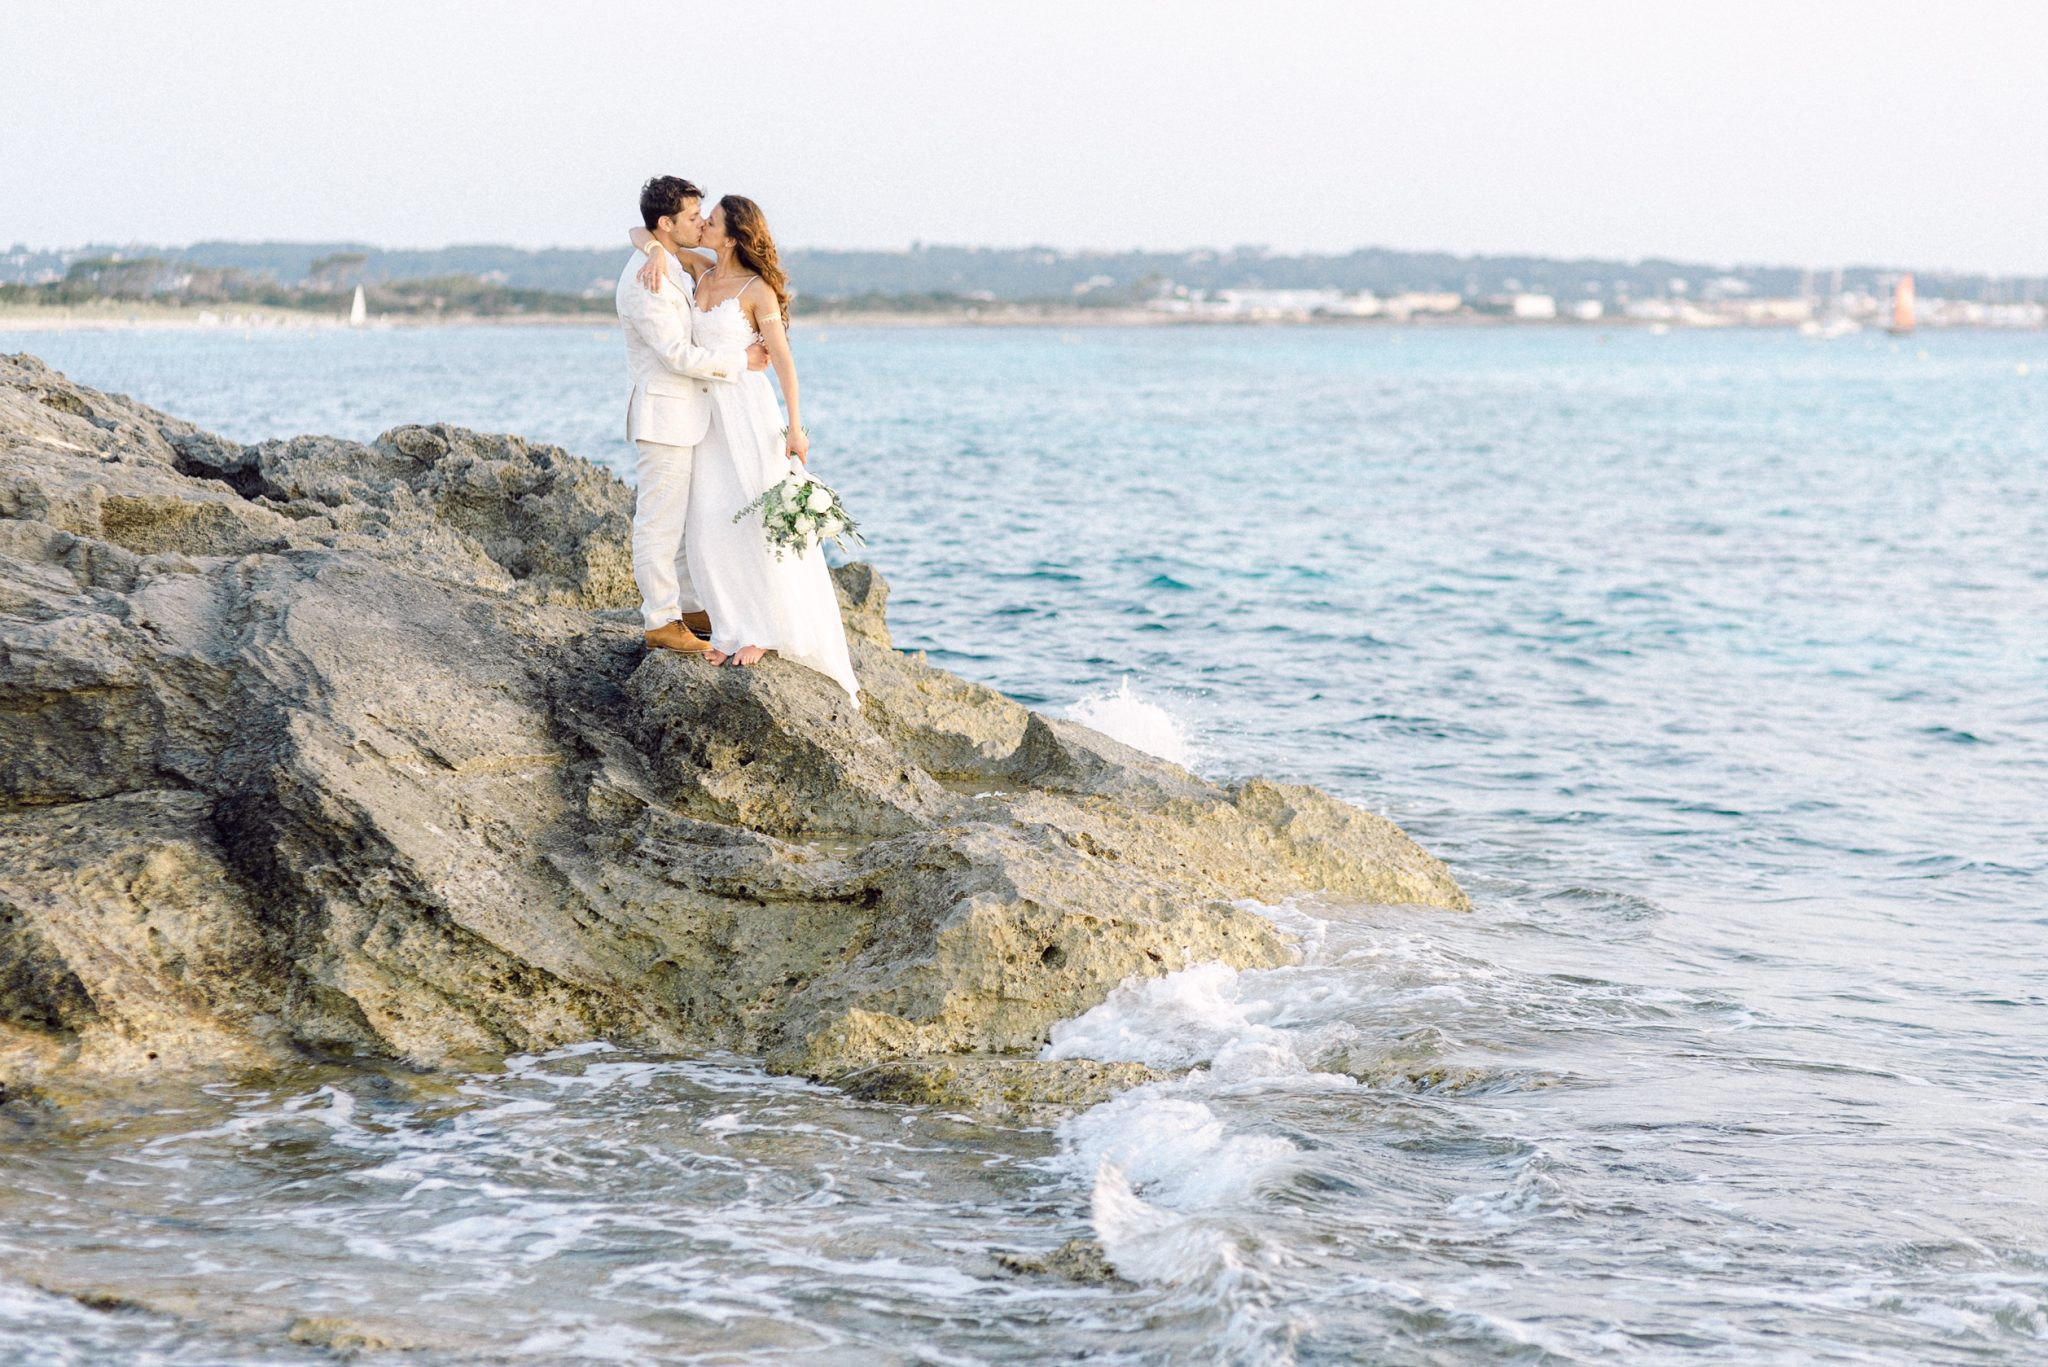 Wedding Photographer Formentera